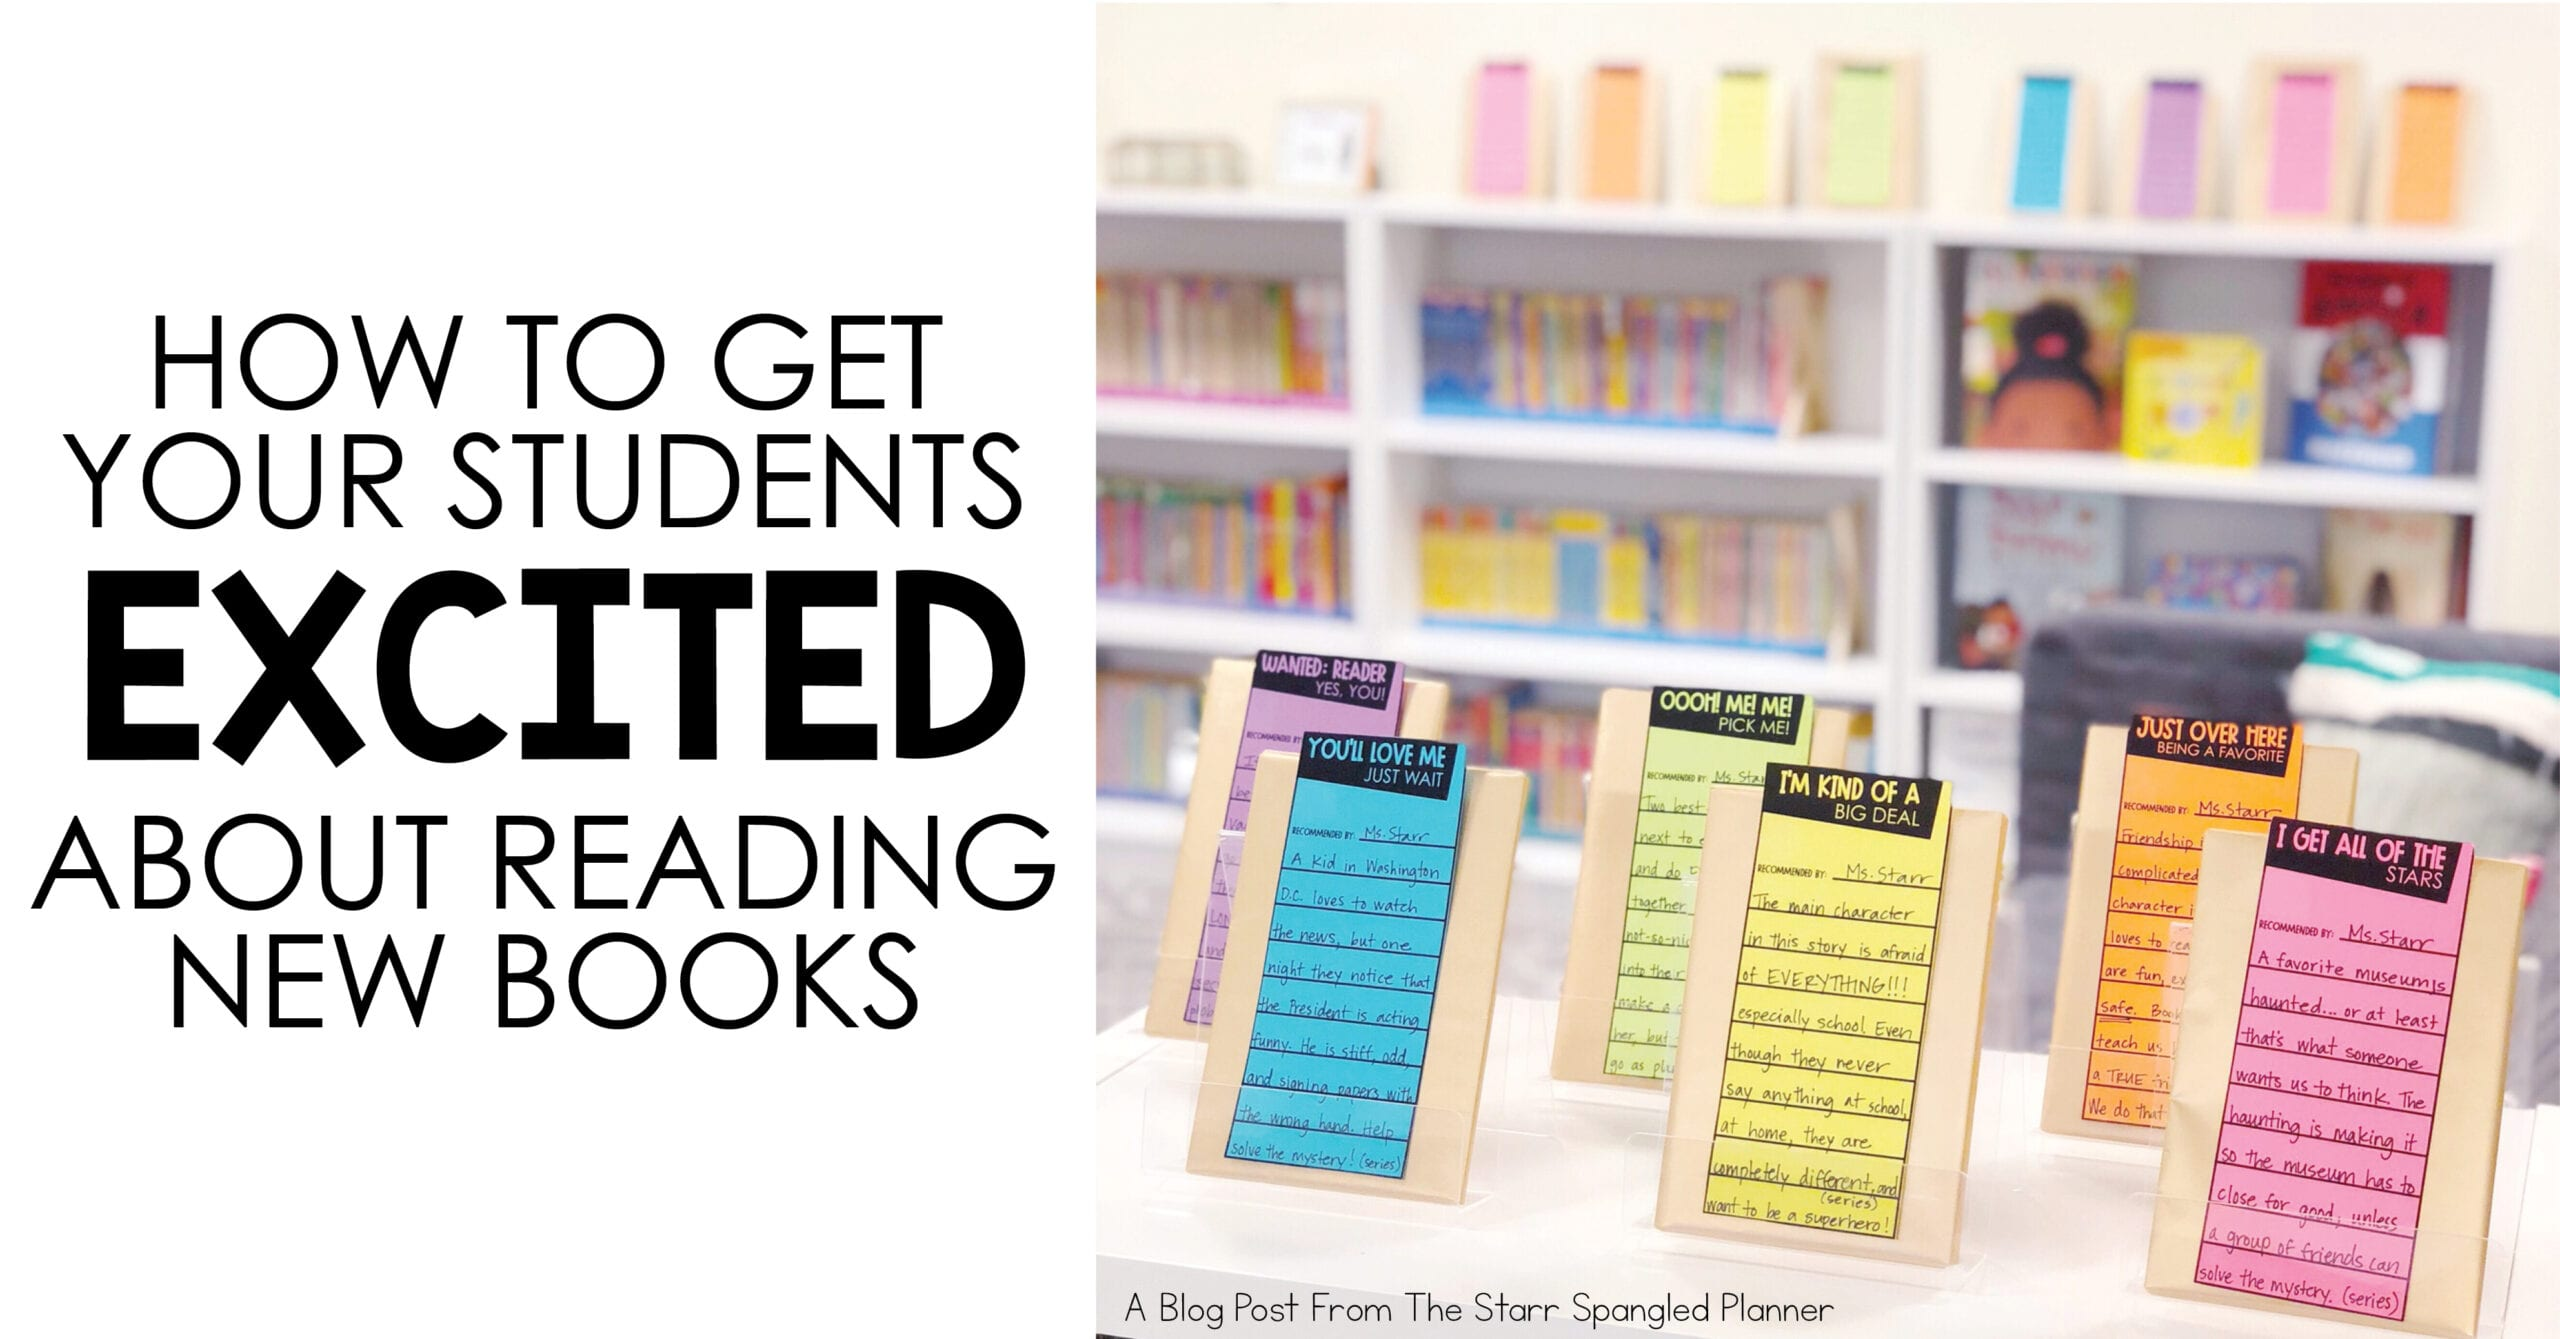 get your students excited about new books- recommended reading